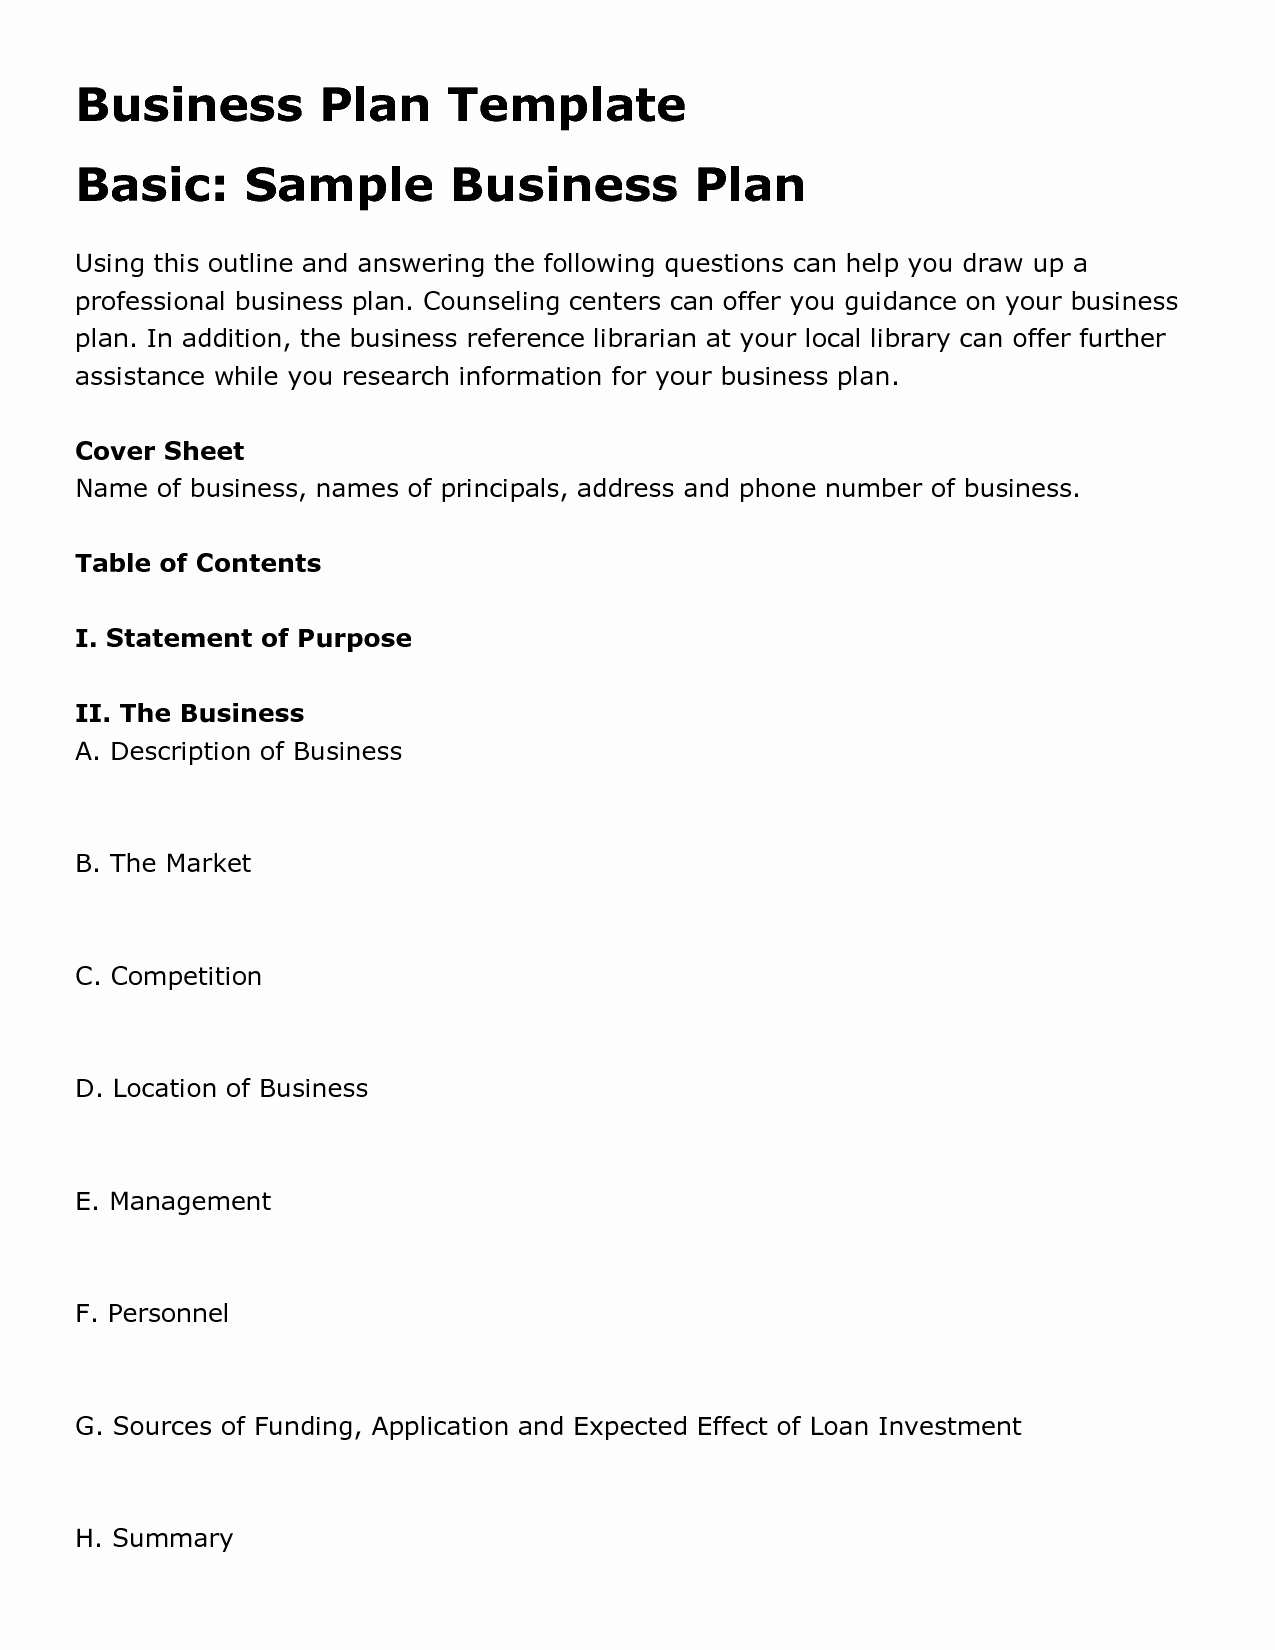 Basic Business Plan Template Free Luxury Simple Business Plan Design Entrepreneur